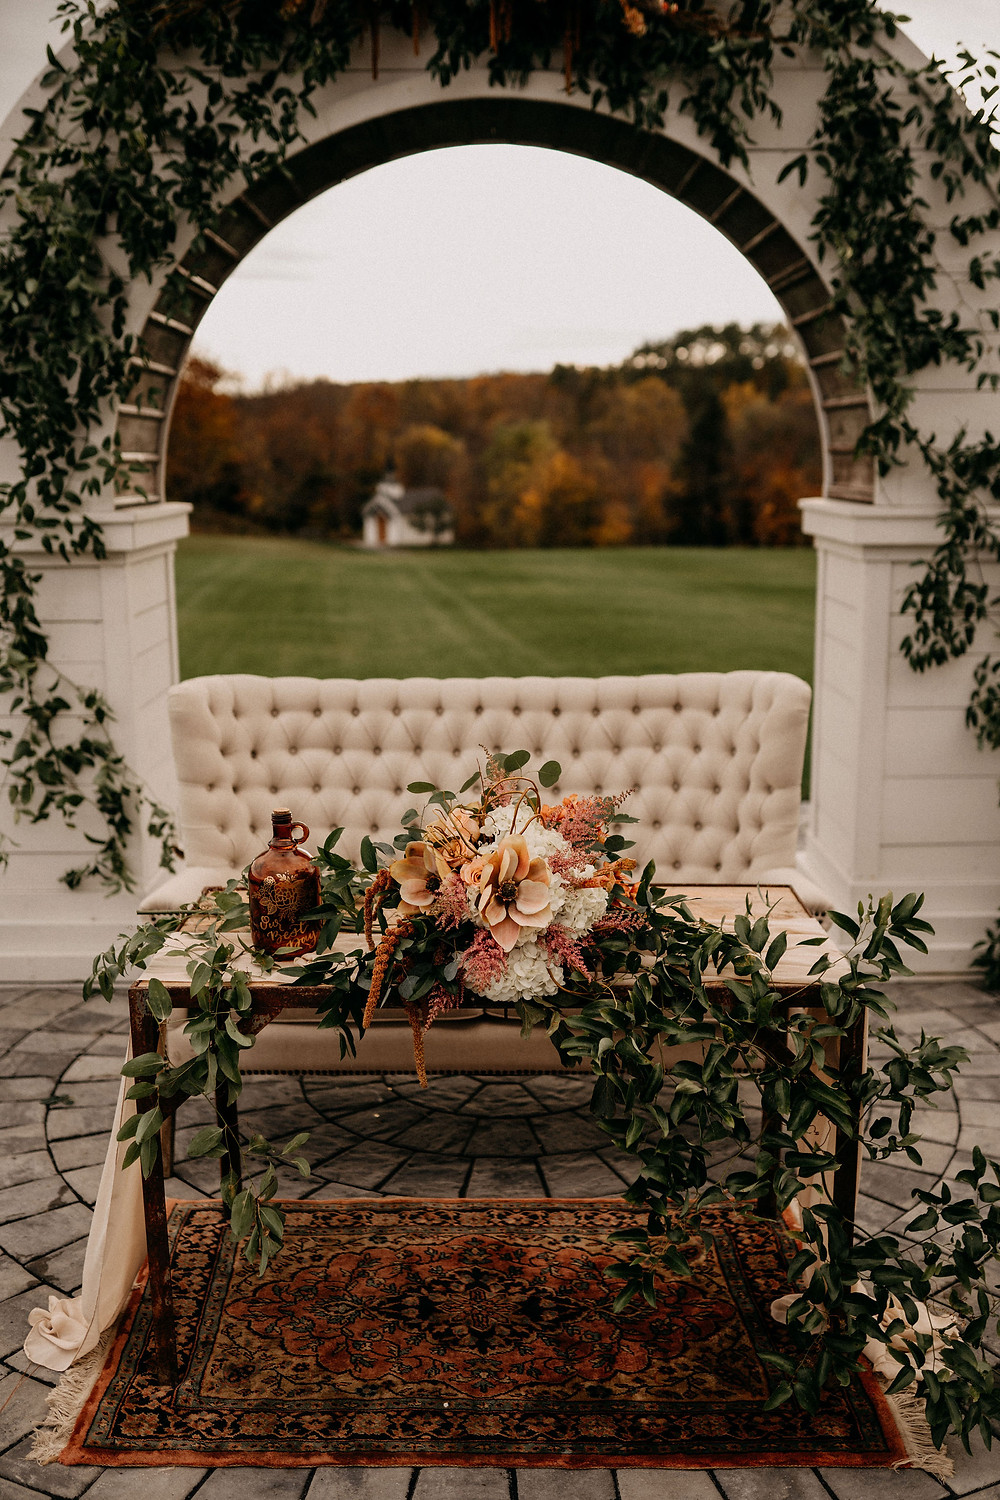 Outdoor Wedding Sweetheart Table: Warm & Rustic Styled Shoot at Hayloft in the Arch captured by Tracy Jade Photography featured on Pretty Little Vintage Co.